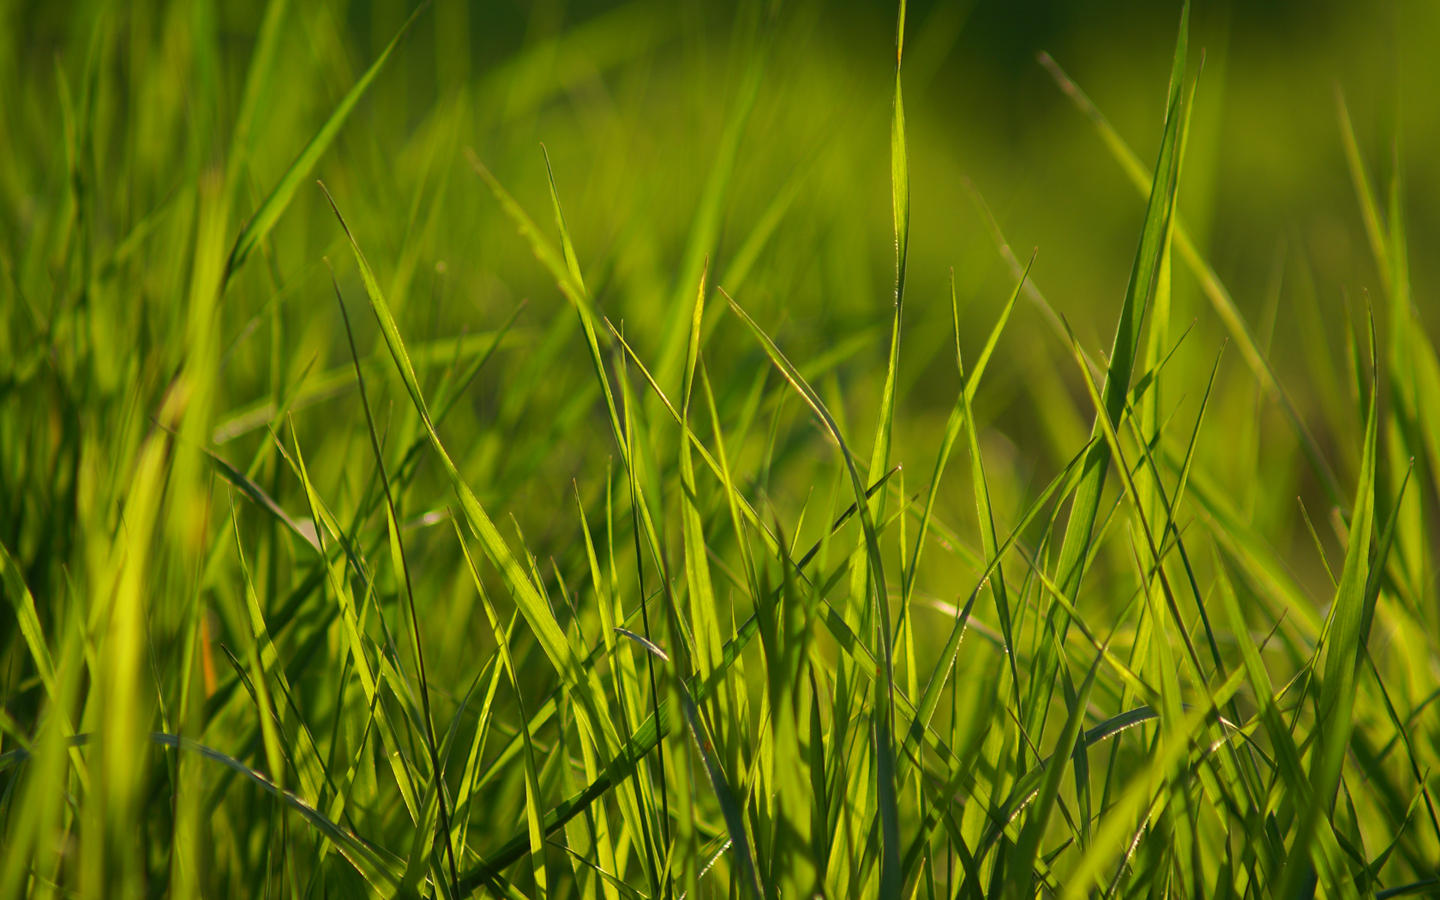 Spring Grass Wallpaper Pack by Ythor